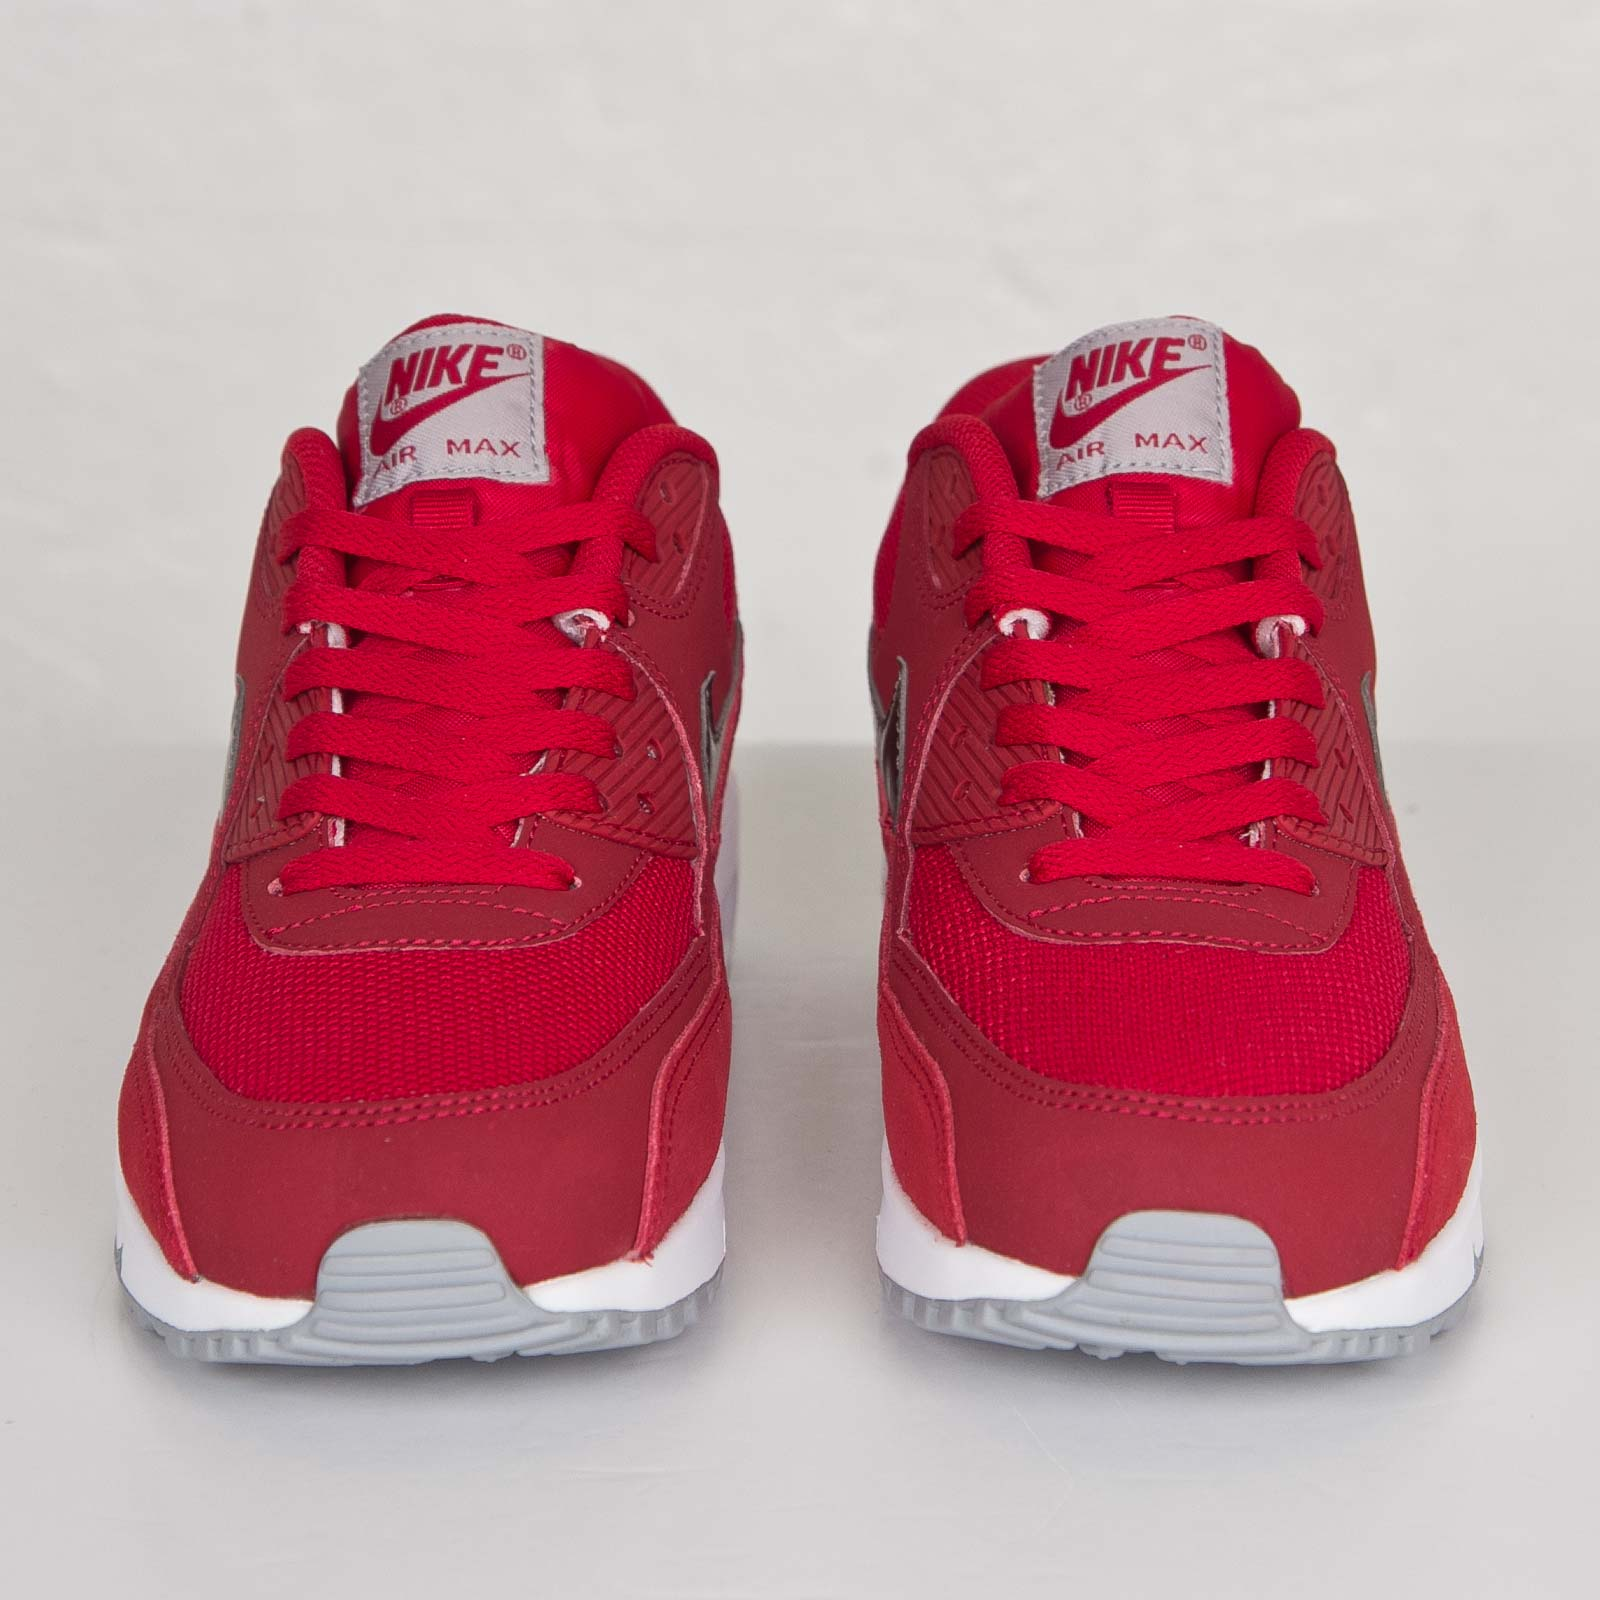 100% authentic 66b62 49748 Nike Air Max 90 Essential - 537384-602 - Sneakersnstuff   sneakers    streetwear online since 1999